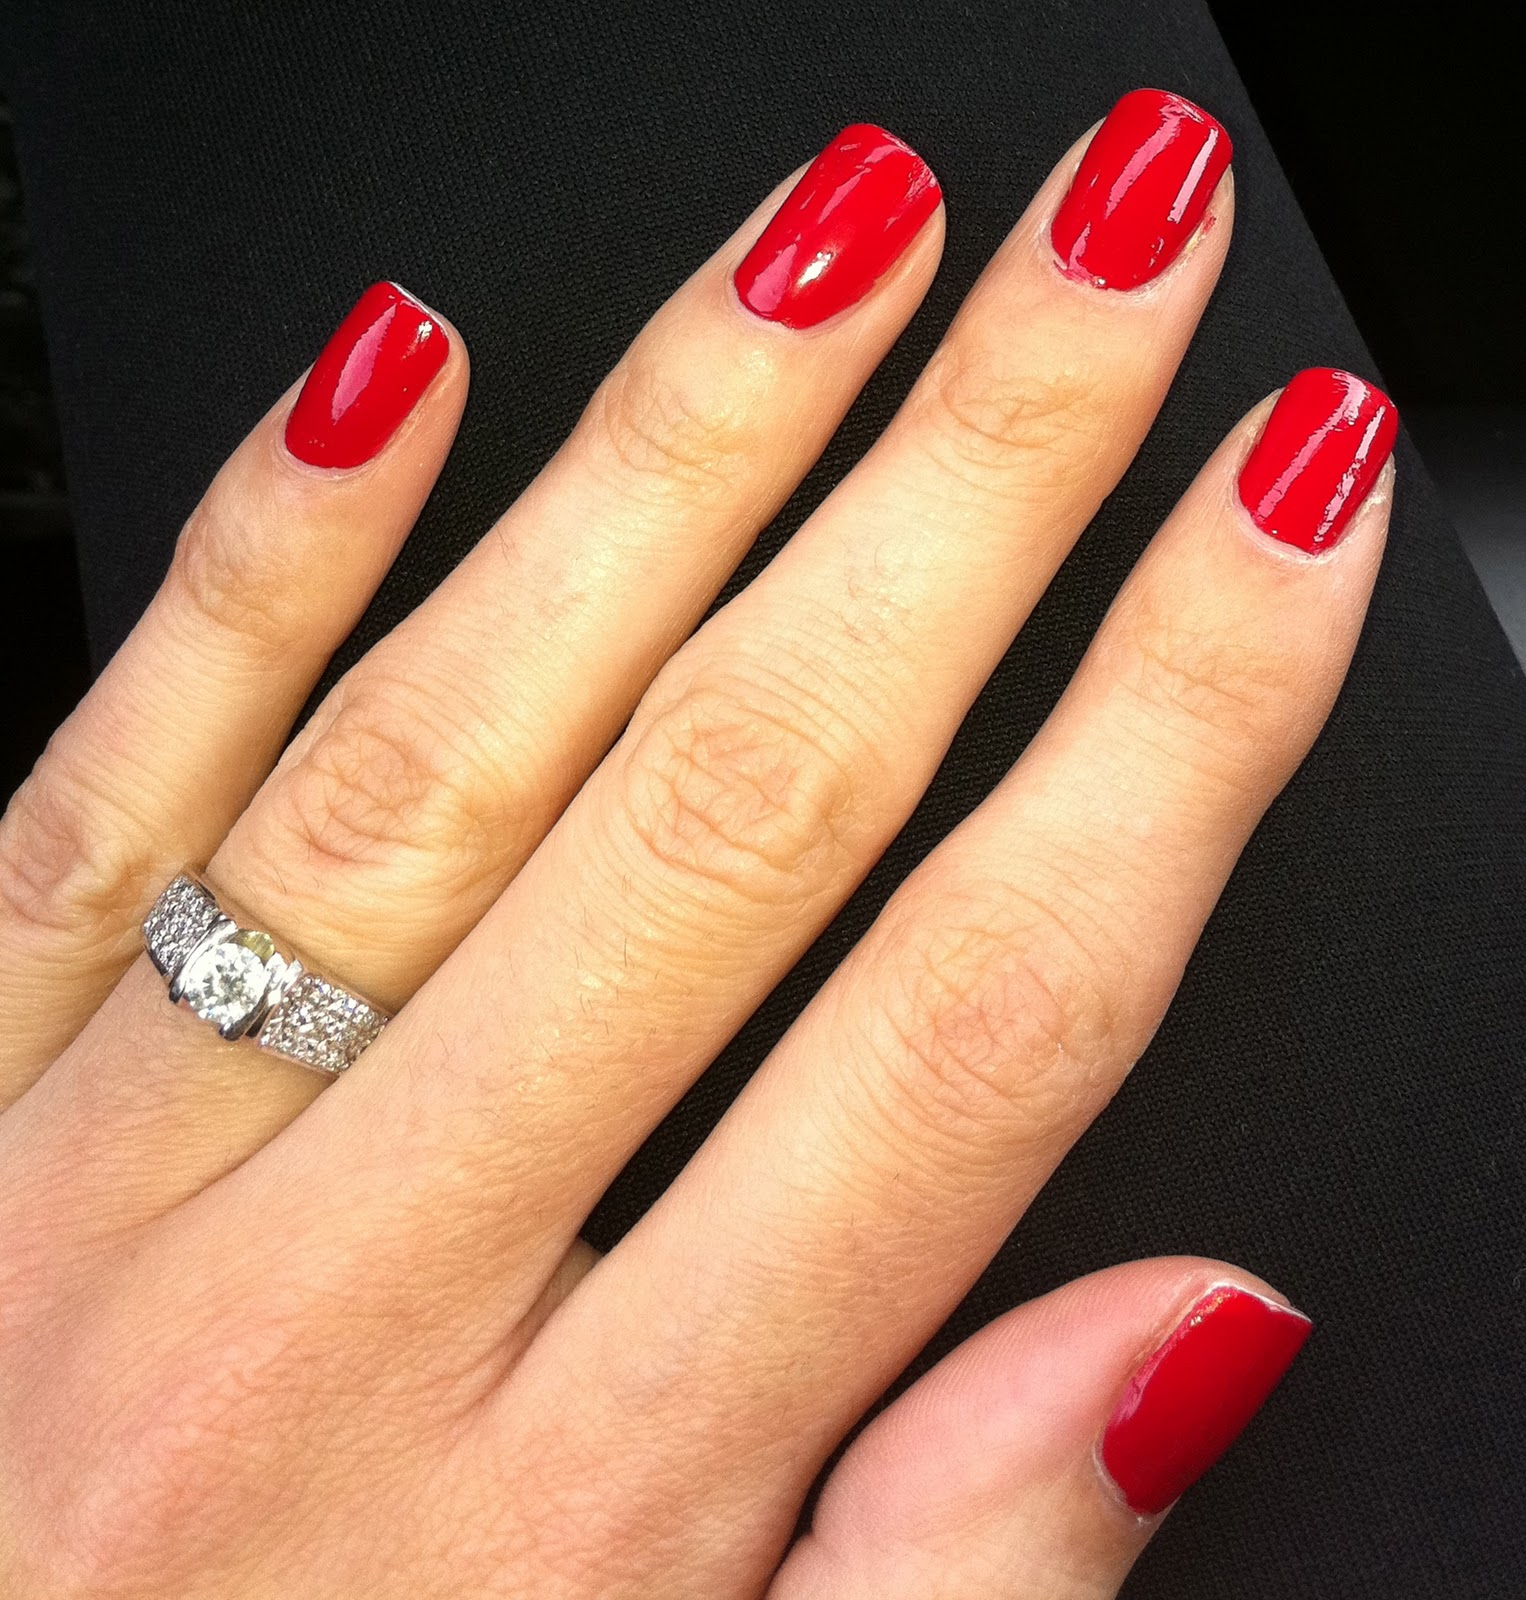 one painted finger nail 13 beautiful red painted ...